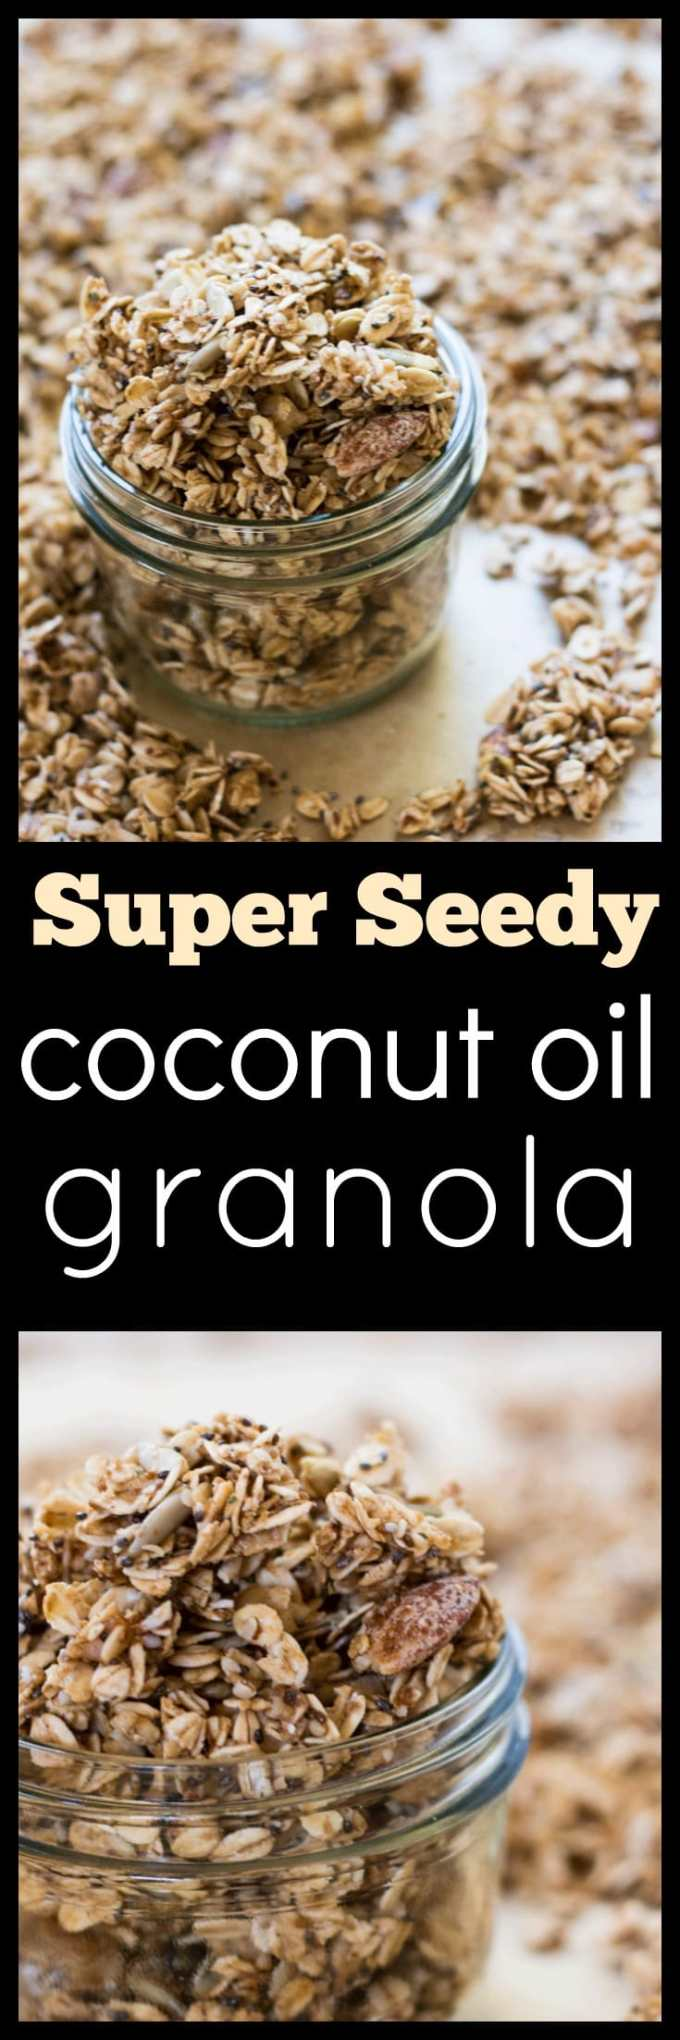 Make your morning something special with this oh-so-delicious Super Seedy Coconut Oil Granola. Jam packed full of nuts and seeds naturally sweetened.